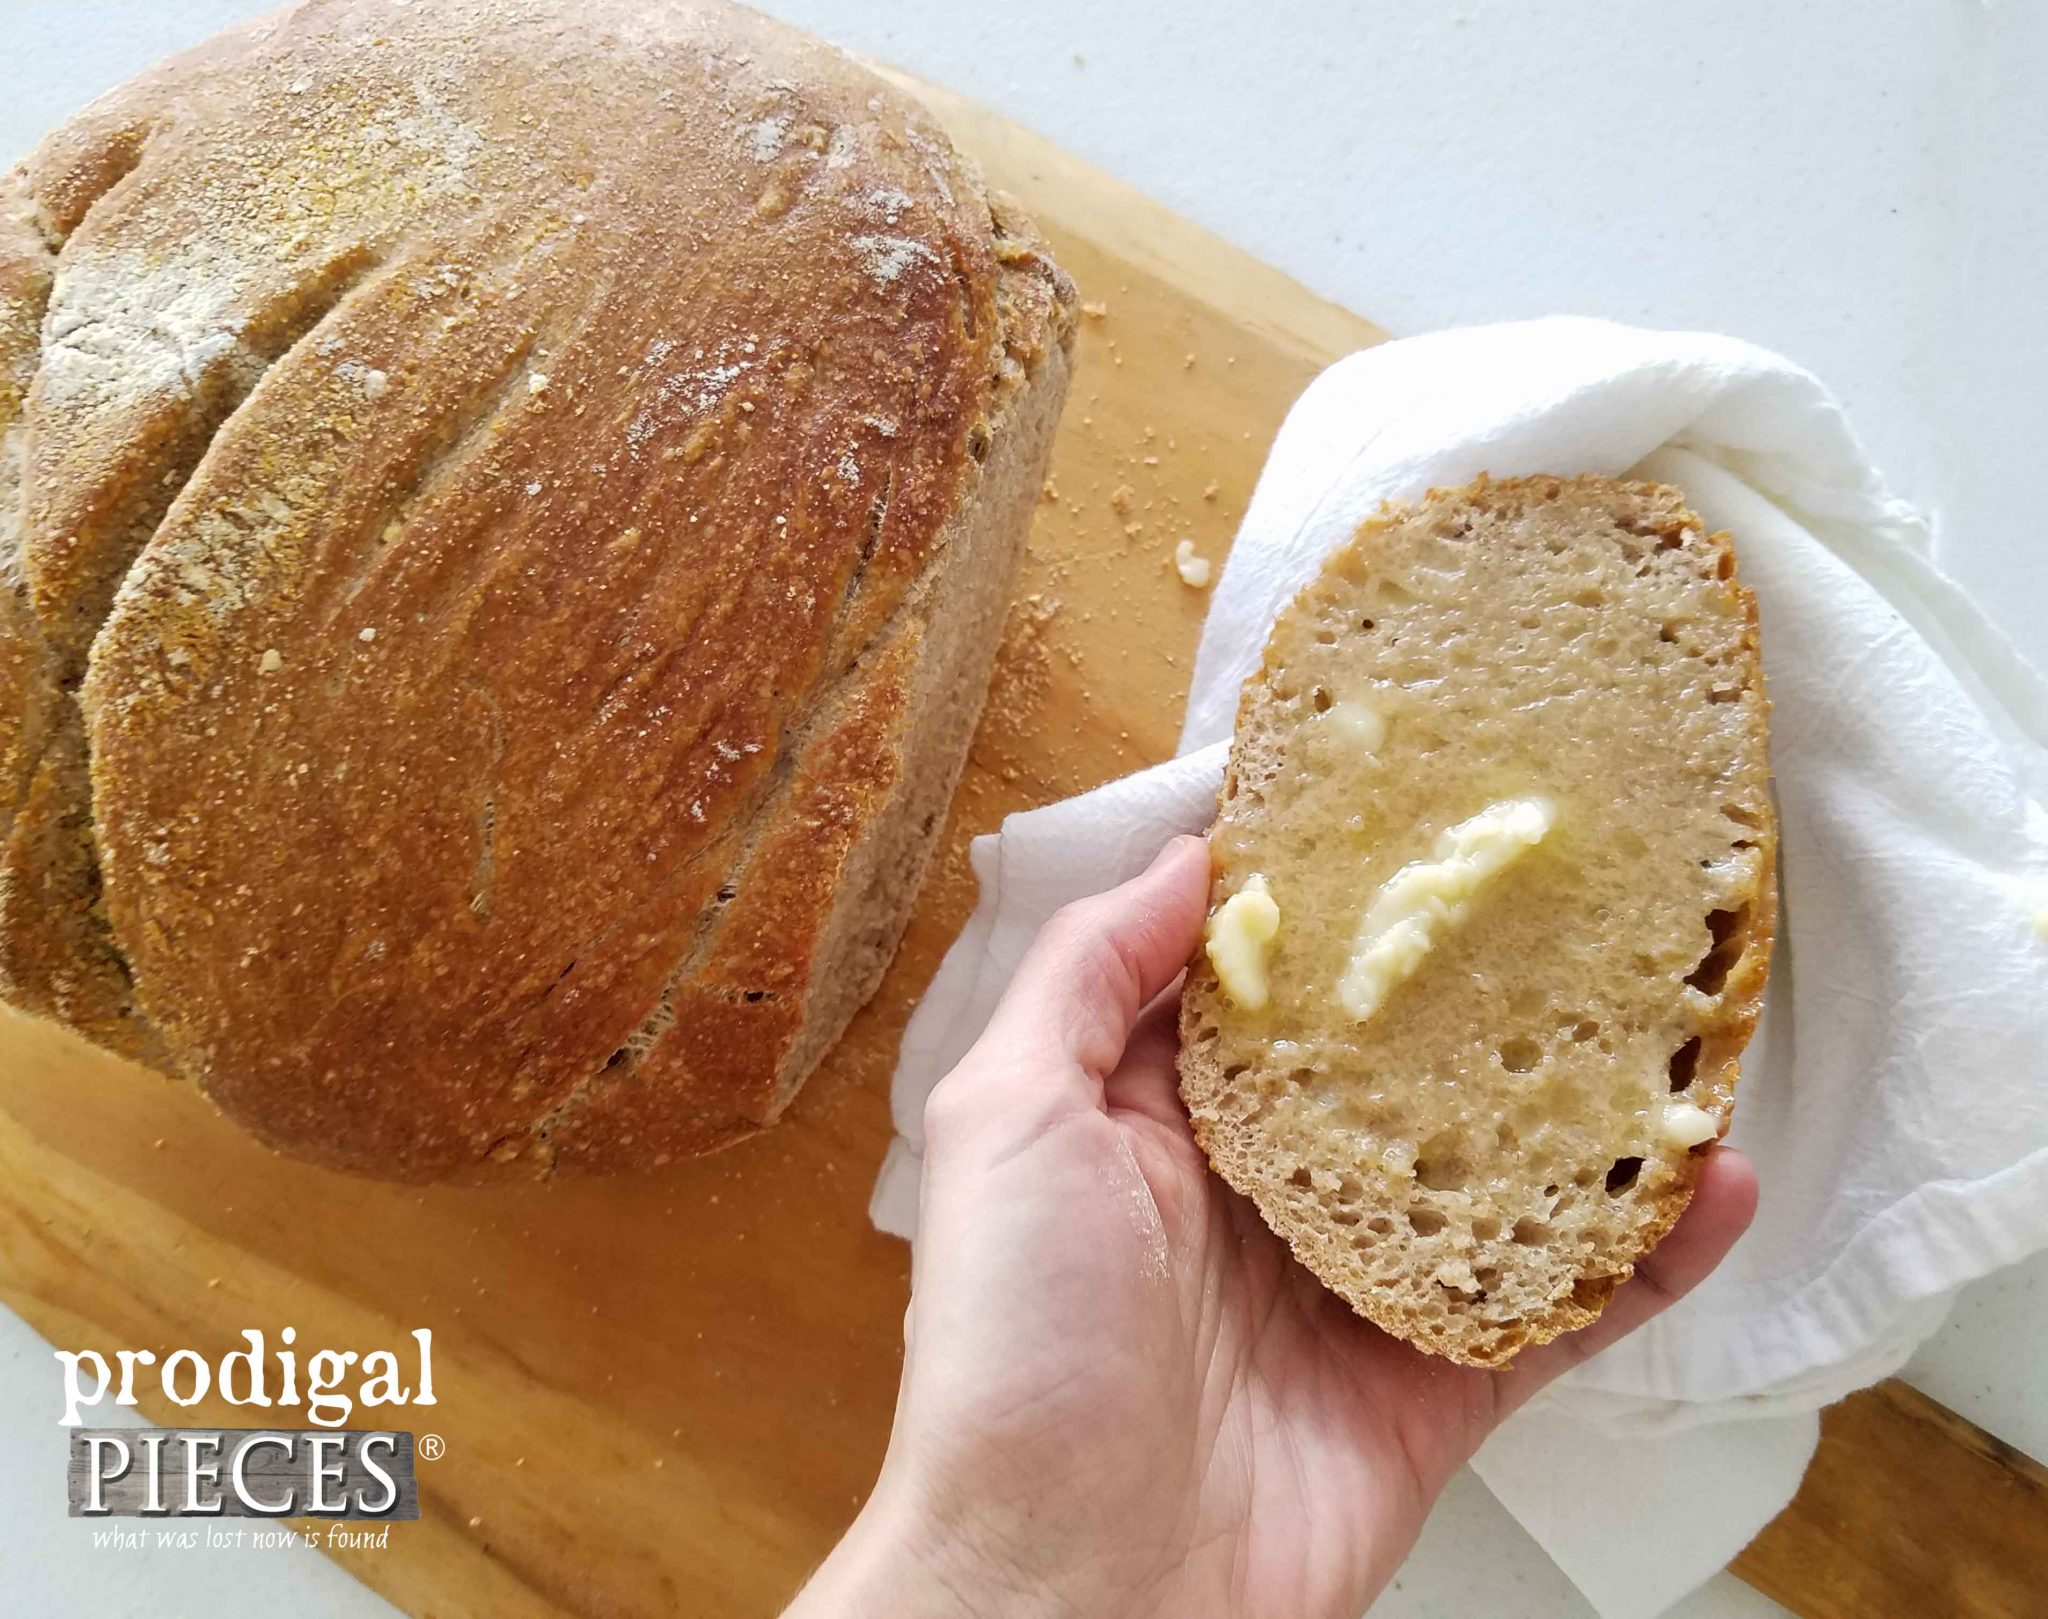 Buttered Whole Wheat Artisan Bread by Prodigal Pieces | prodigalpieces.com